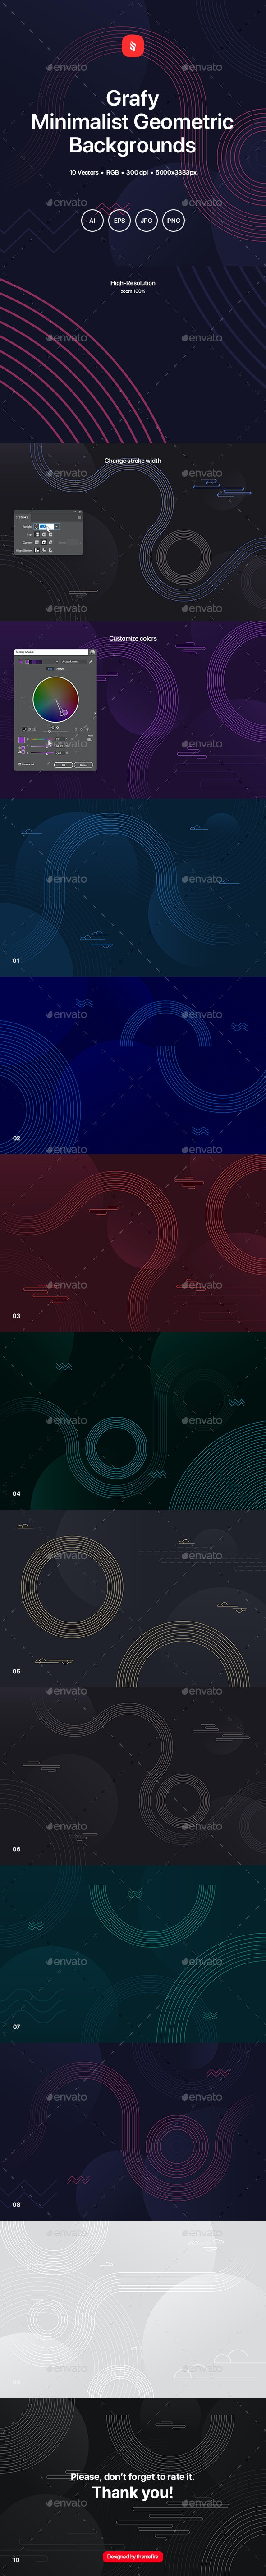 Grafy - Minimalist Geometric Backgrounds - Abstract Backgrounds